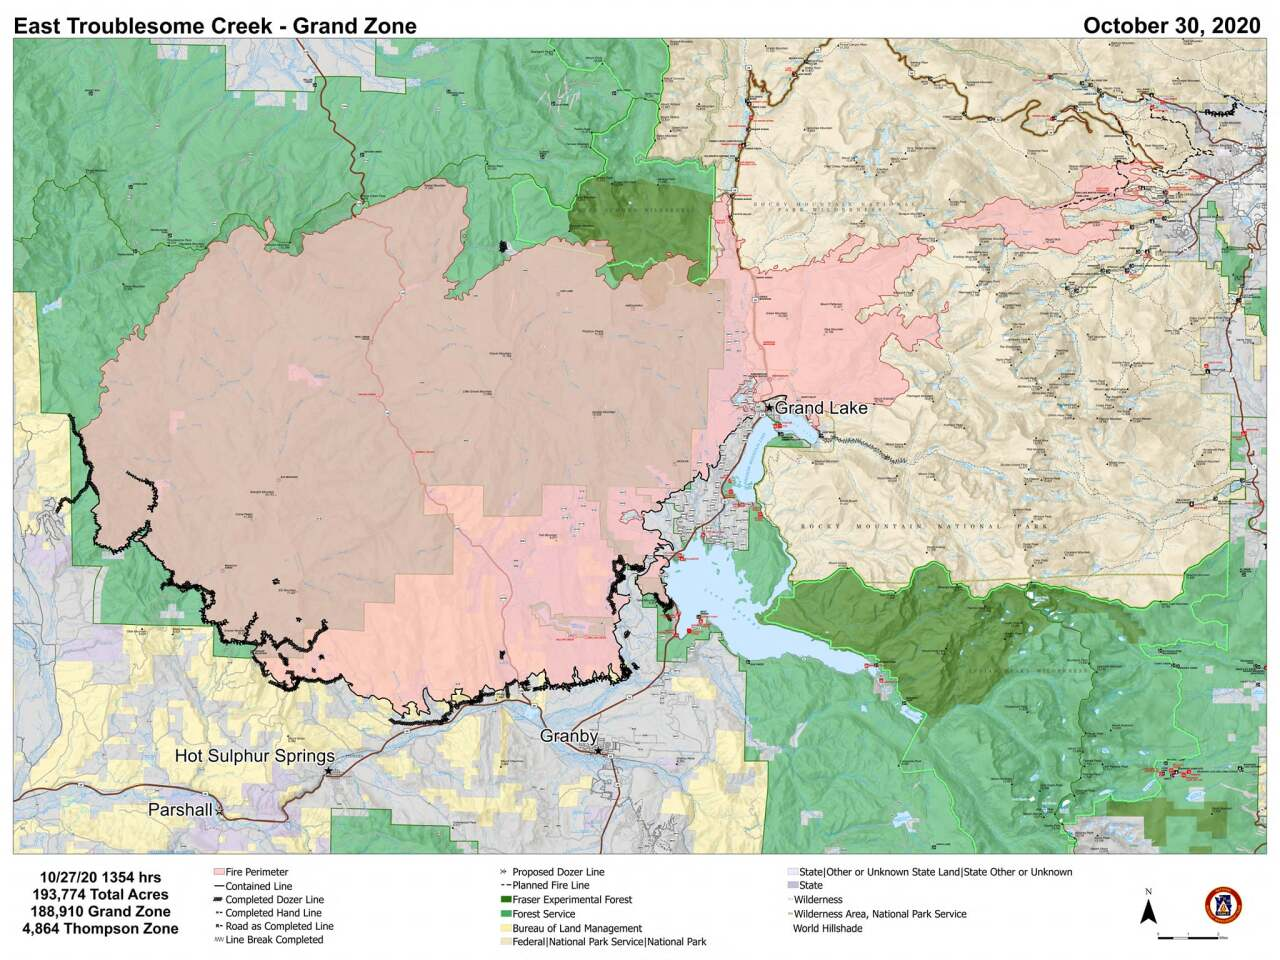 East Troublesome Fire containment map_Oct 30 2020